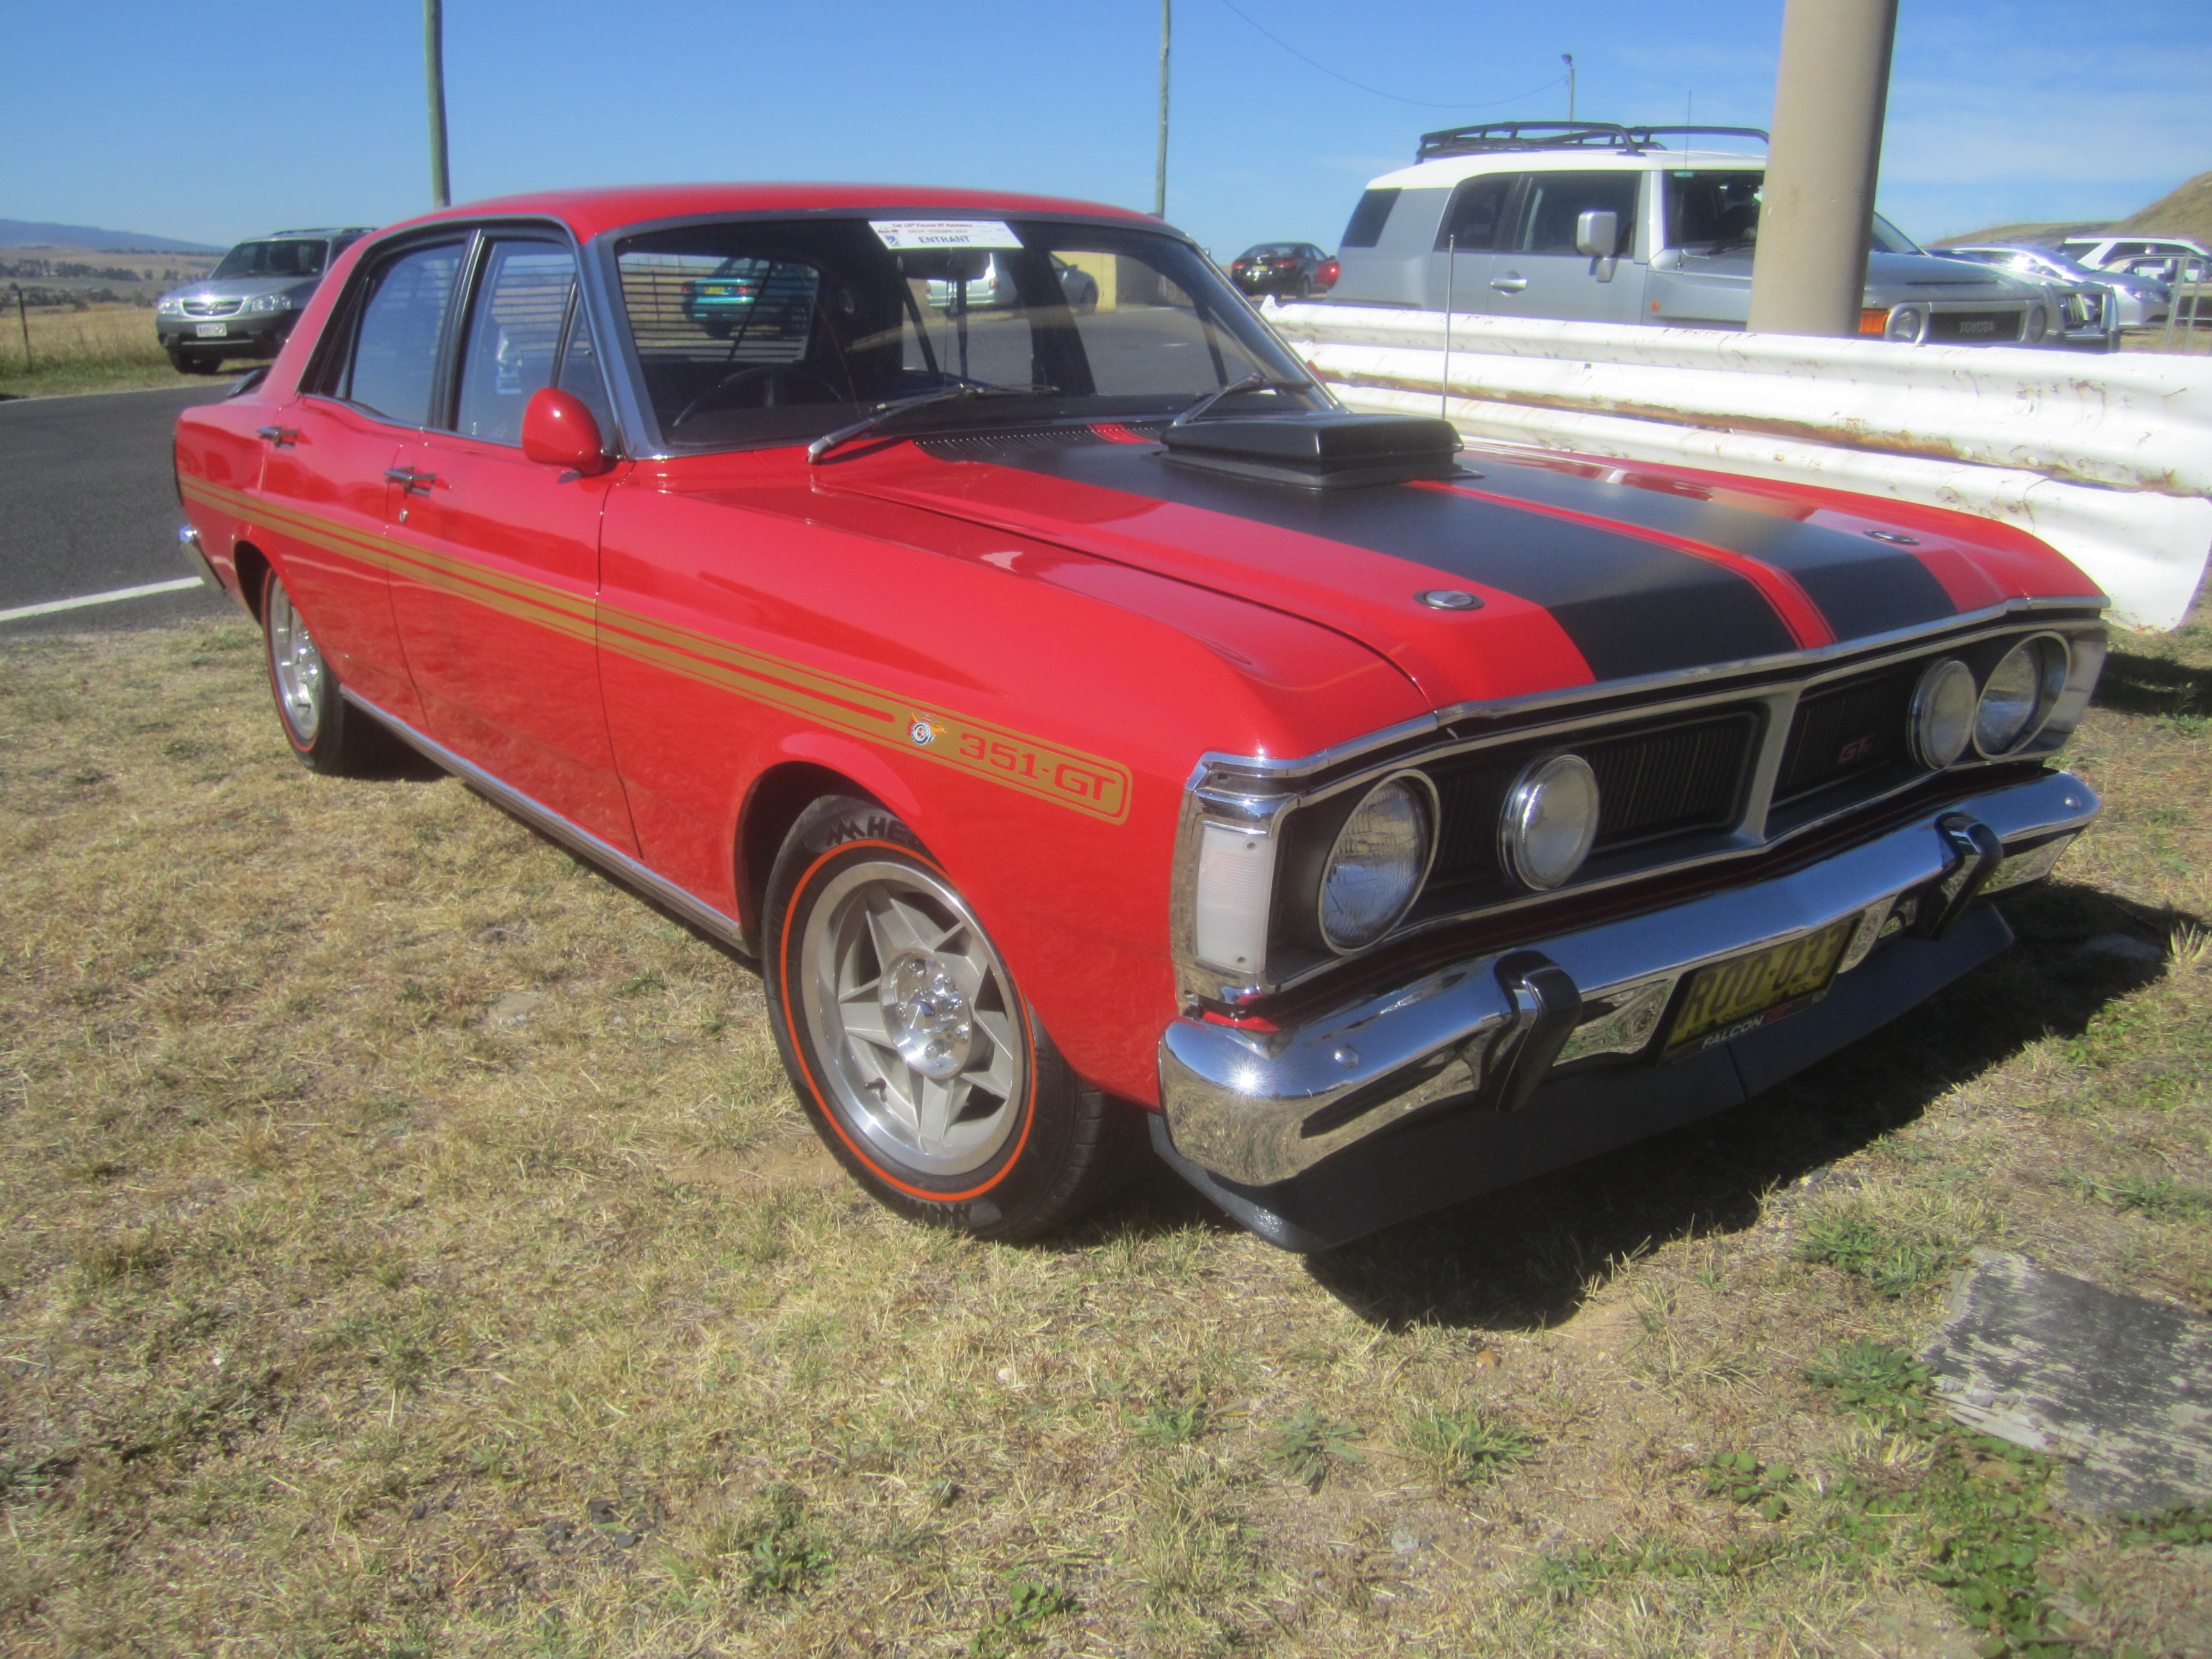 ProductPage besides Cult Movie Review Mad Max Beyond Thunderdome 1985 likewise Ford xw falcon further My One Owner 1974 Xb Falcon Ute 28349 likewise Pictures Ford Falcon Futura Wagon Xw 1969 70 217939 800x600. on ford xw